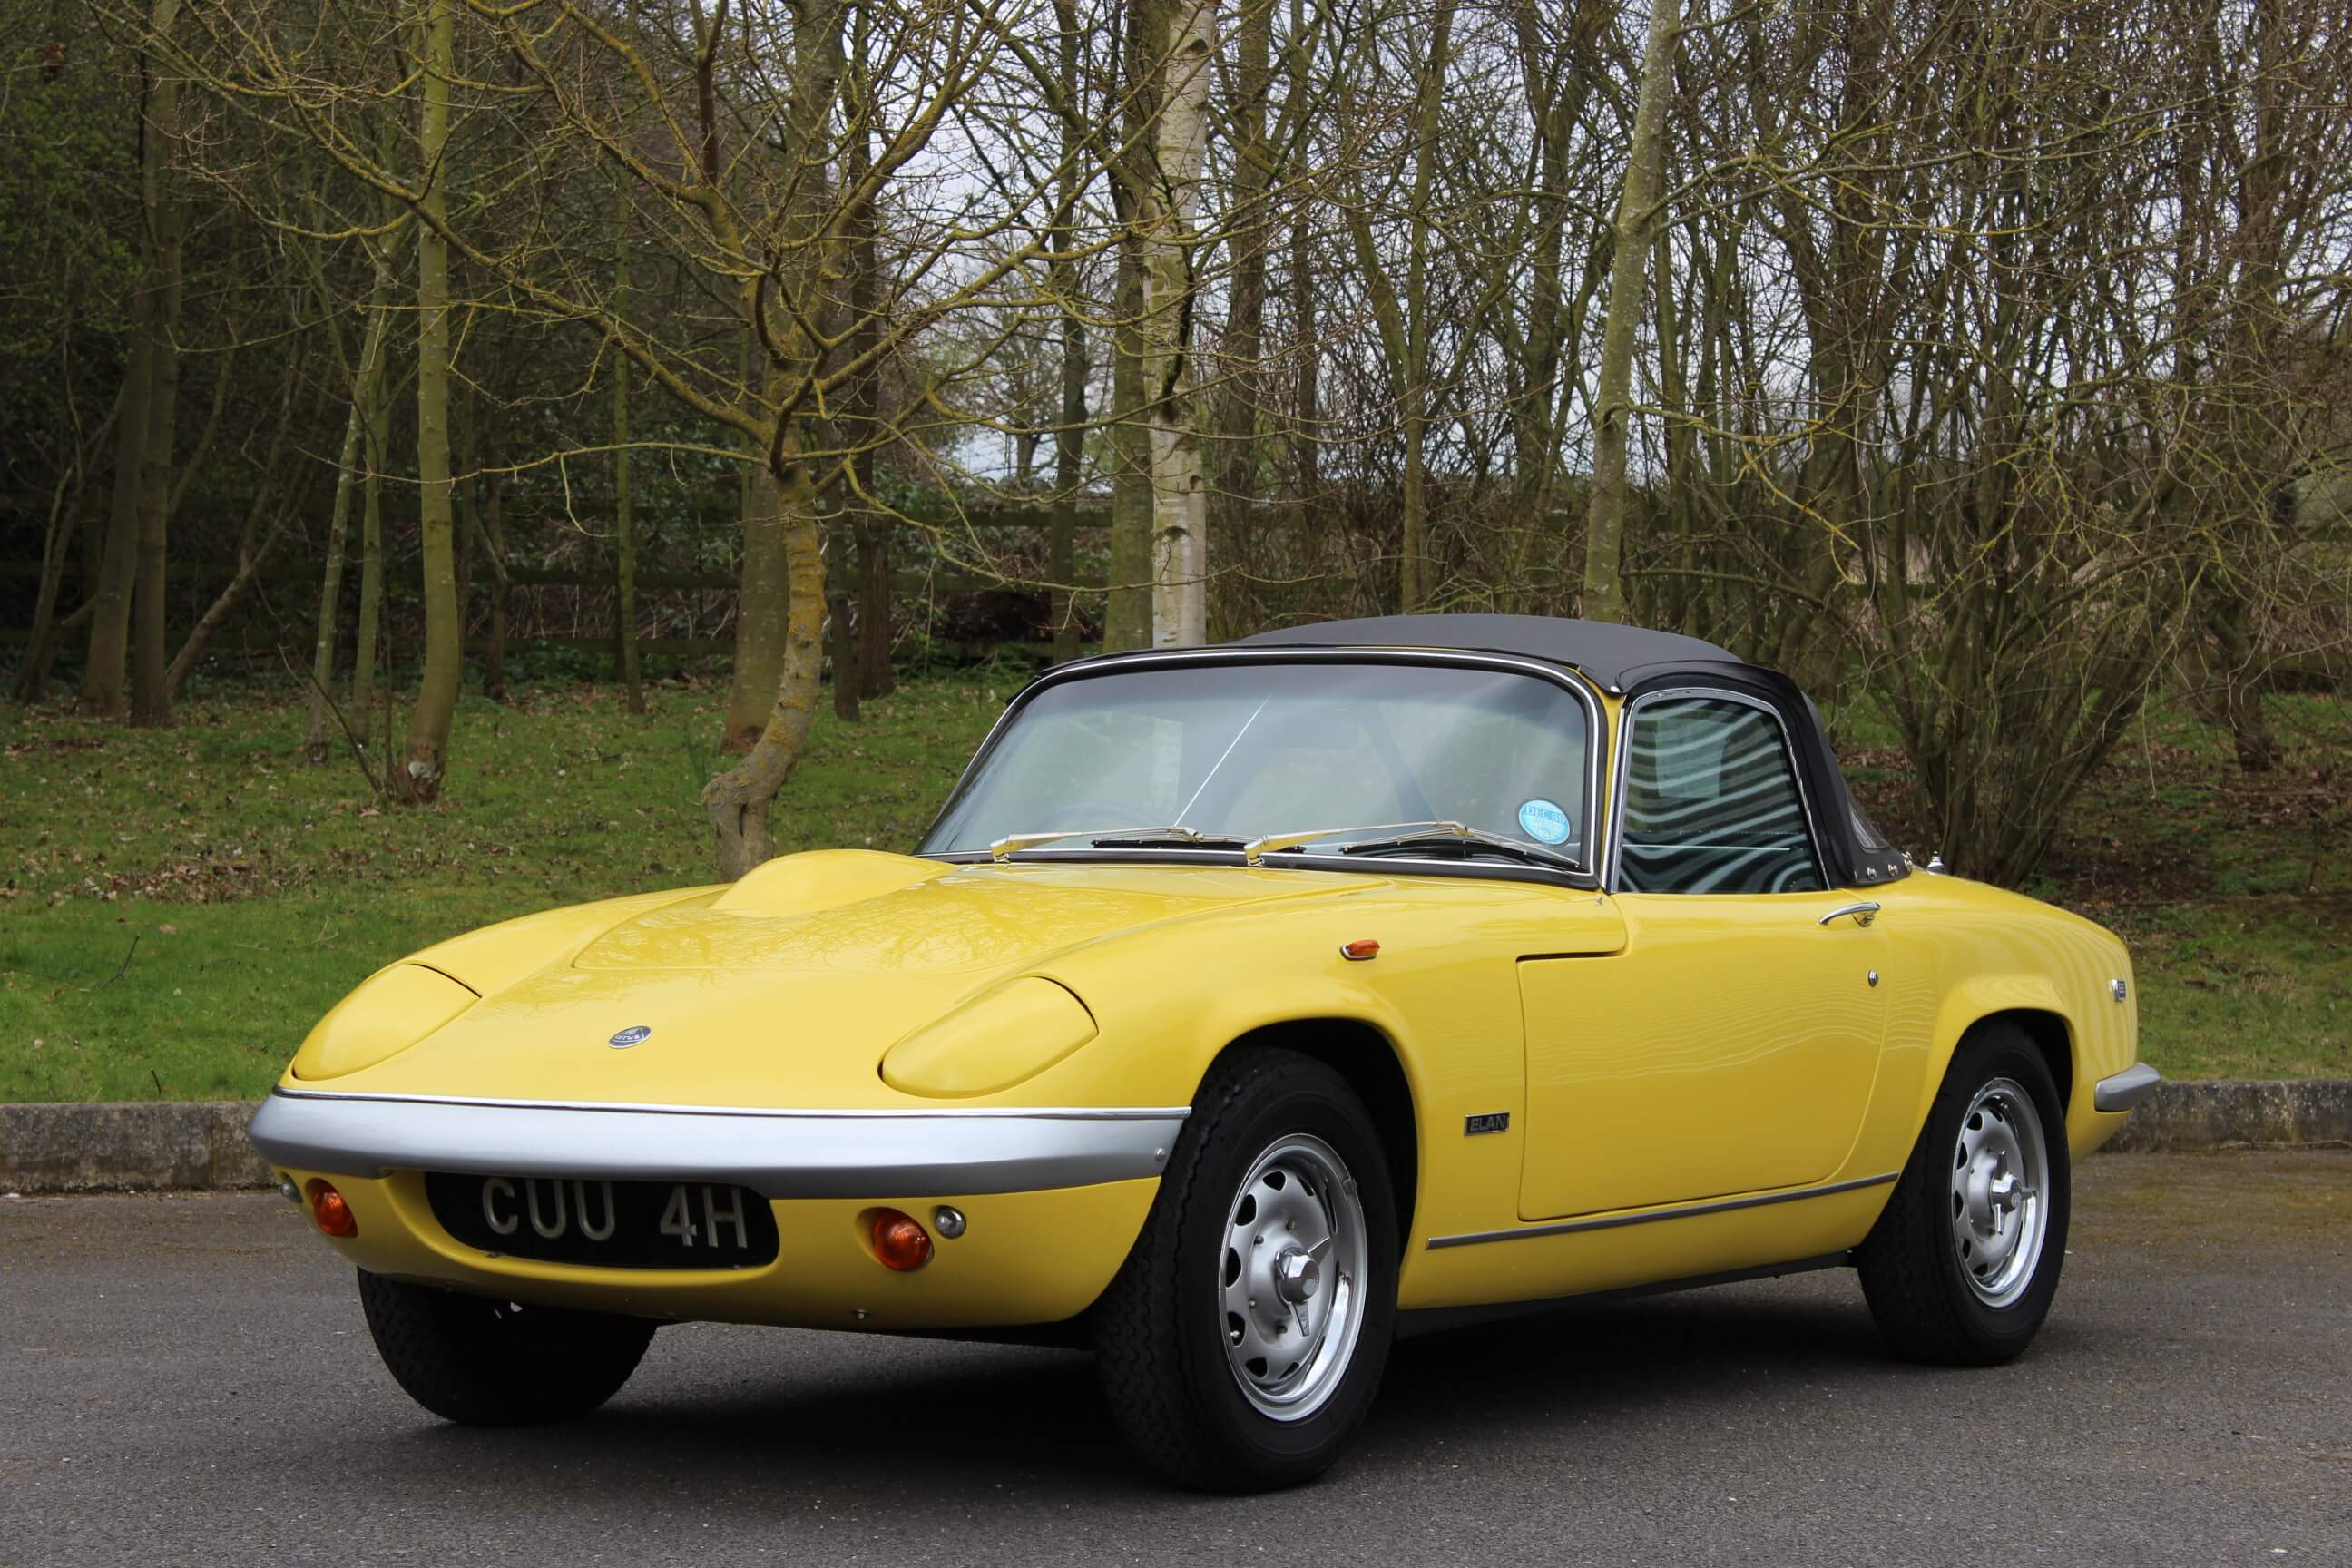 1969 LOTUS ELAN S4 SE DHC - THE BEST ! - SHERWOOD RESTORATIONS